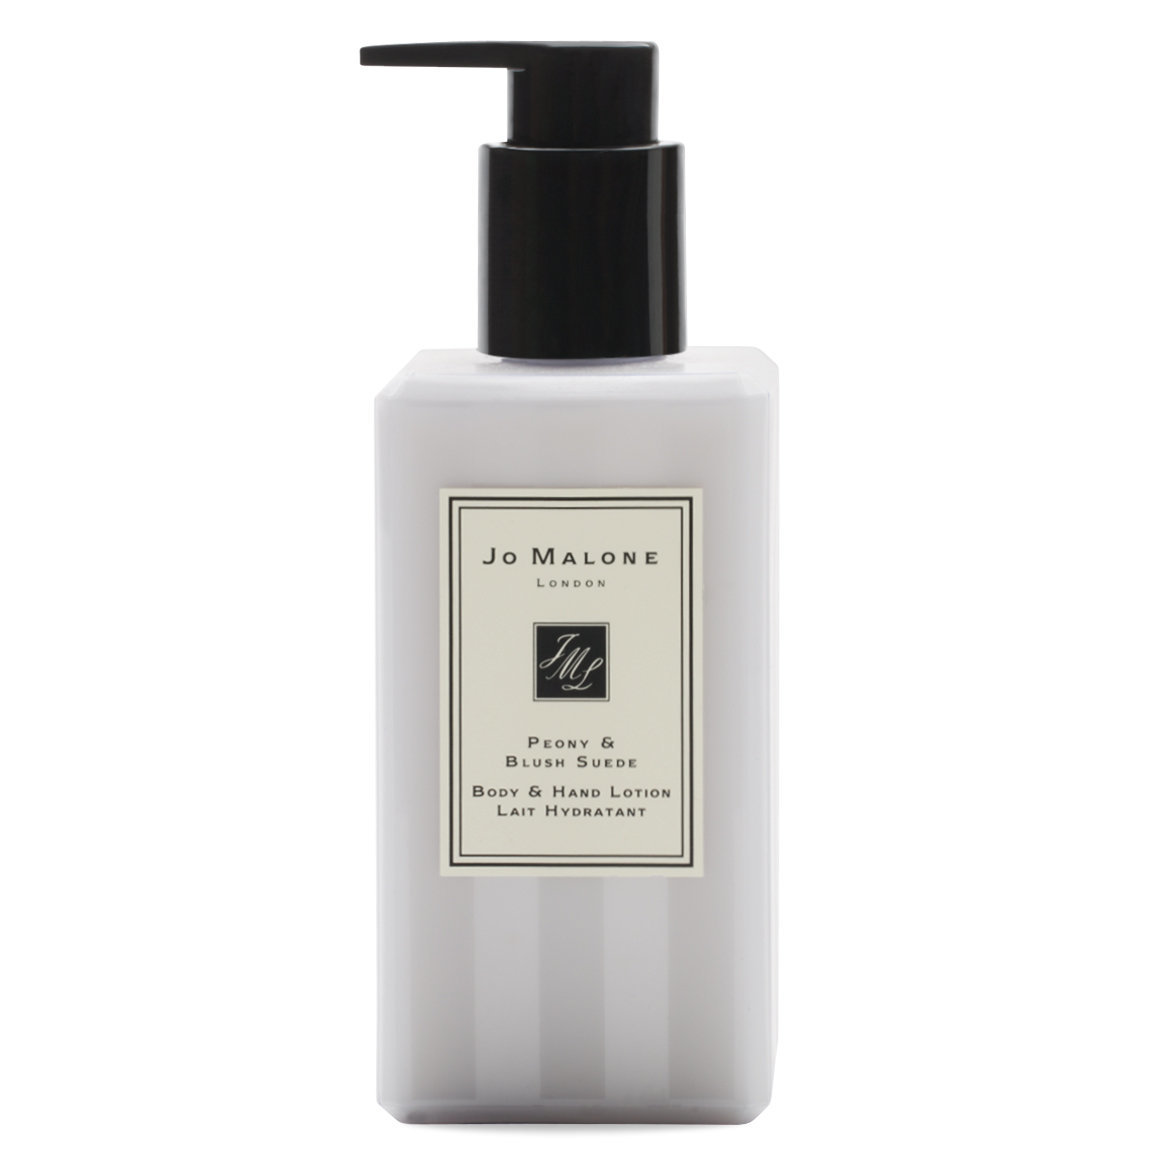 Jo Malone London Peony & Blush Suede Body & Hand Lotion alternative view 1 - product swatch.